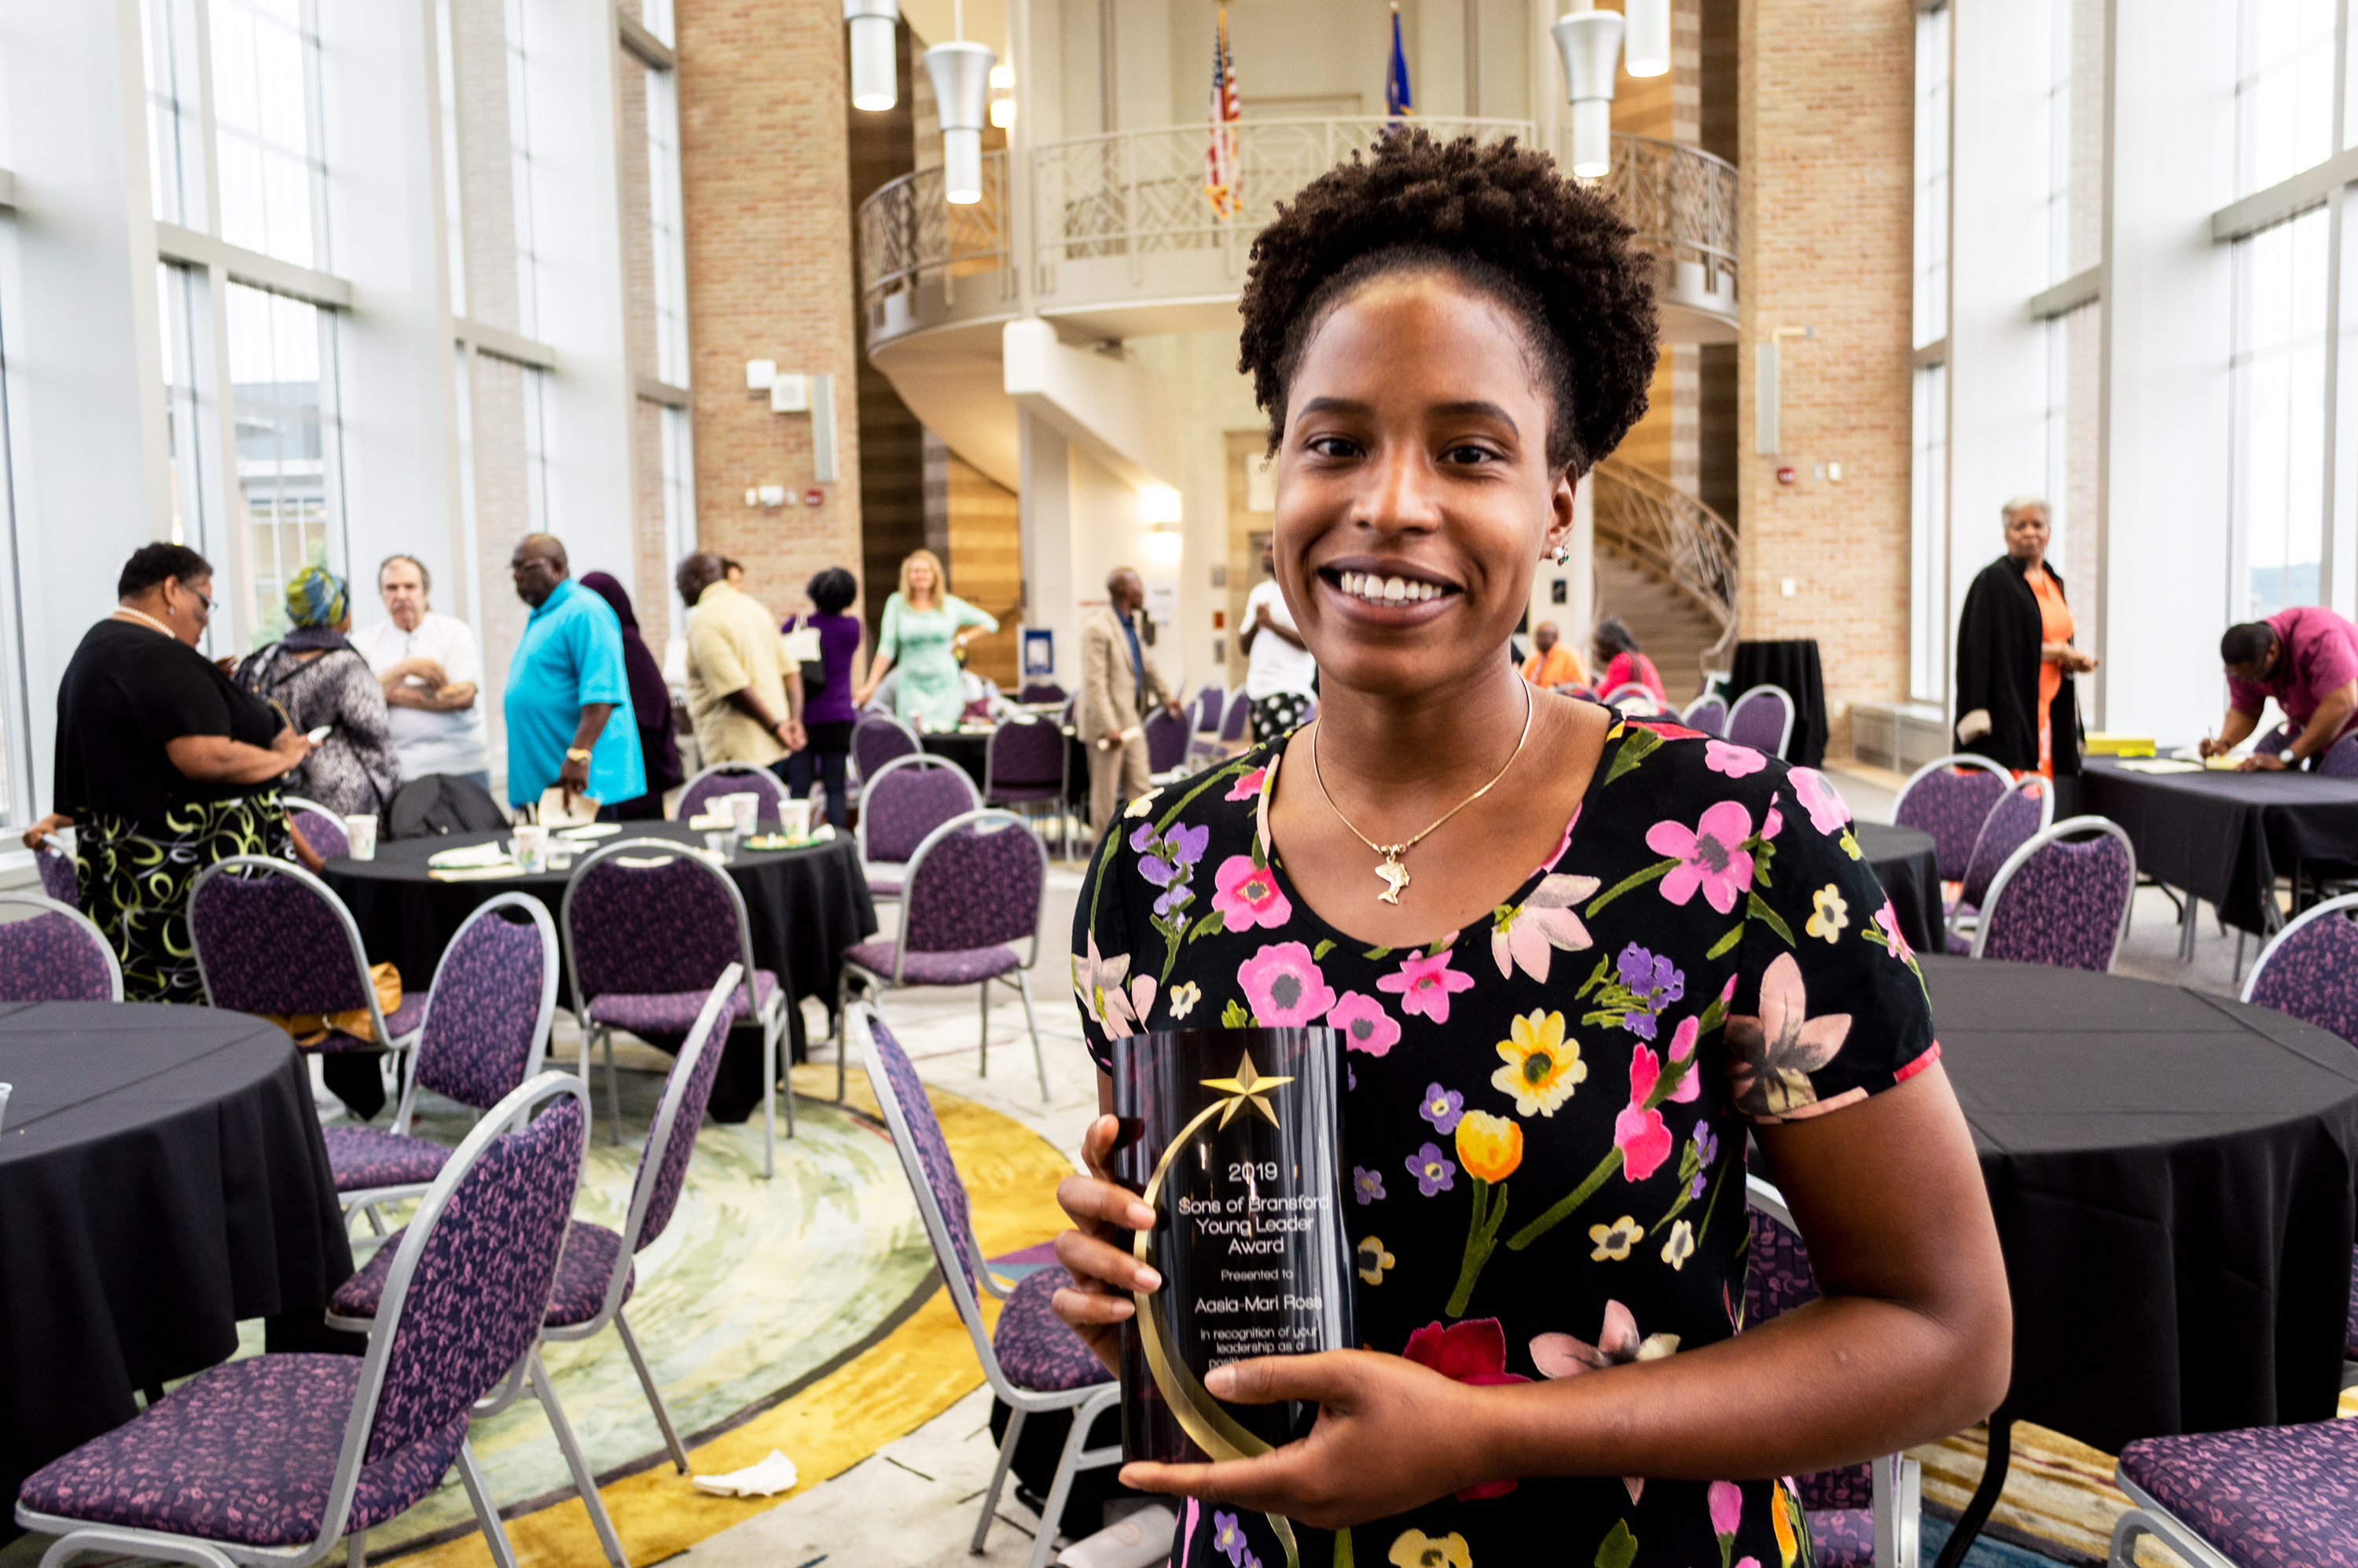 Aasia-Mari Ross poses with her Young Leader Award after the 2019 Sons of Bransford awards ceremony. (Mandy Hathaway / The Metropolitan)